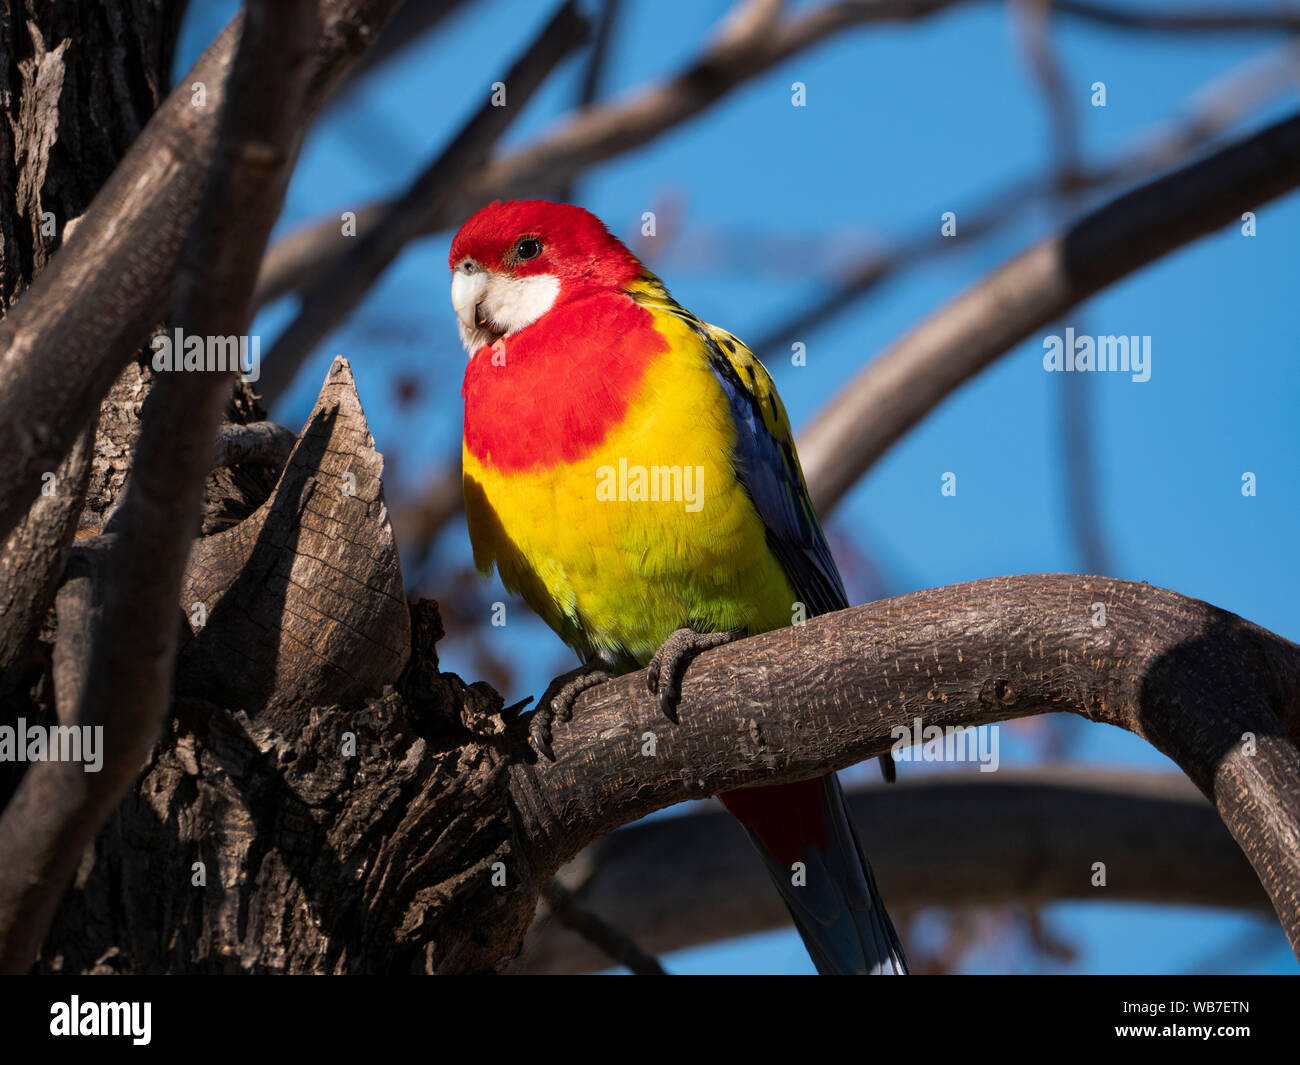 Eastern Rosella, Platycercus eximius, perched in a tree near Dubbo, Central Western New South Wales, Australia. Stock Photo